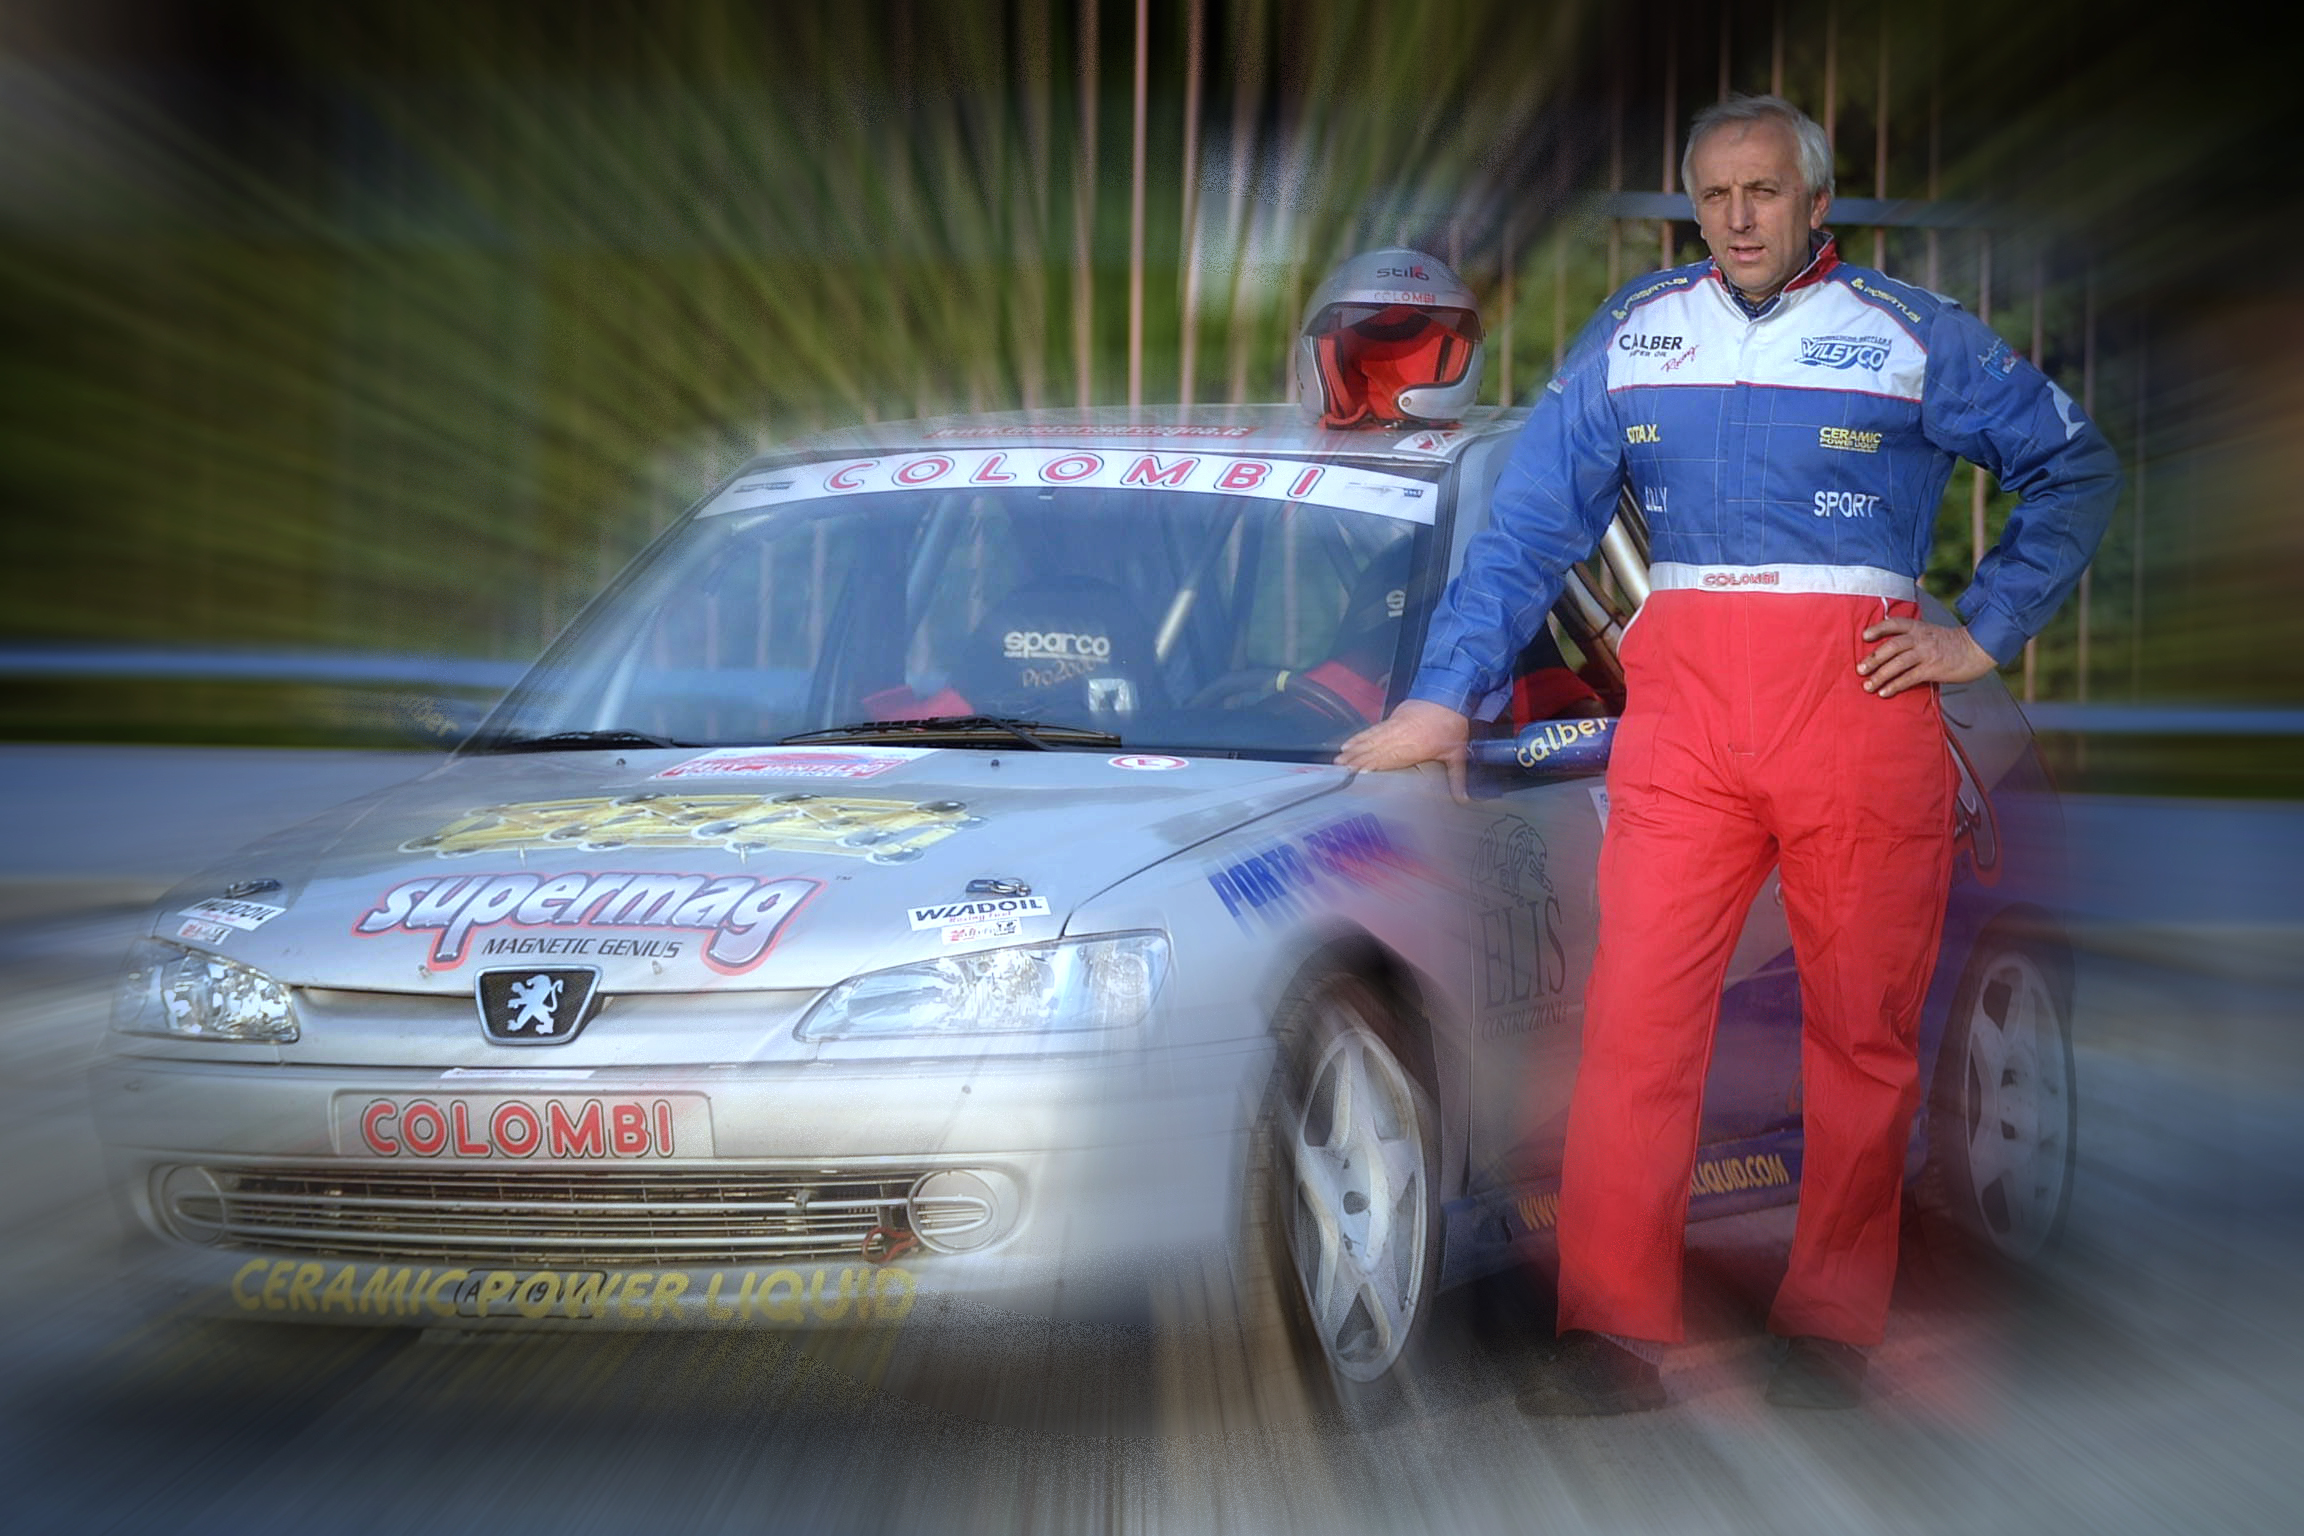 fabrizio-colombi-pilota-rally_04